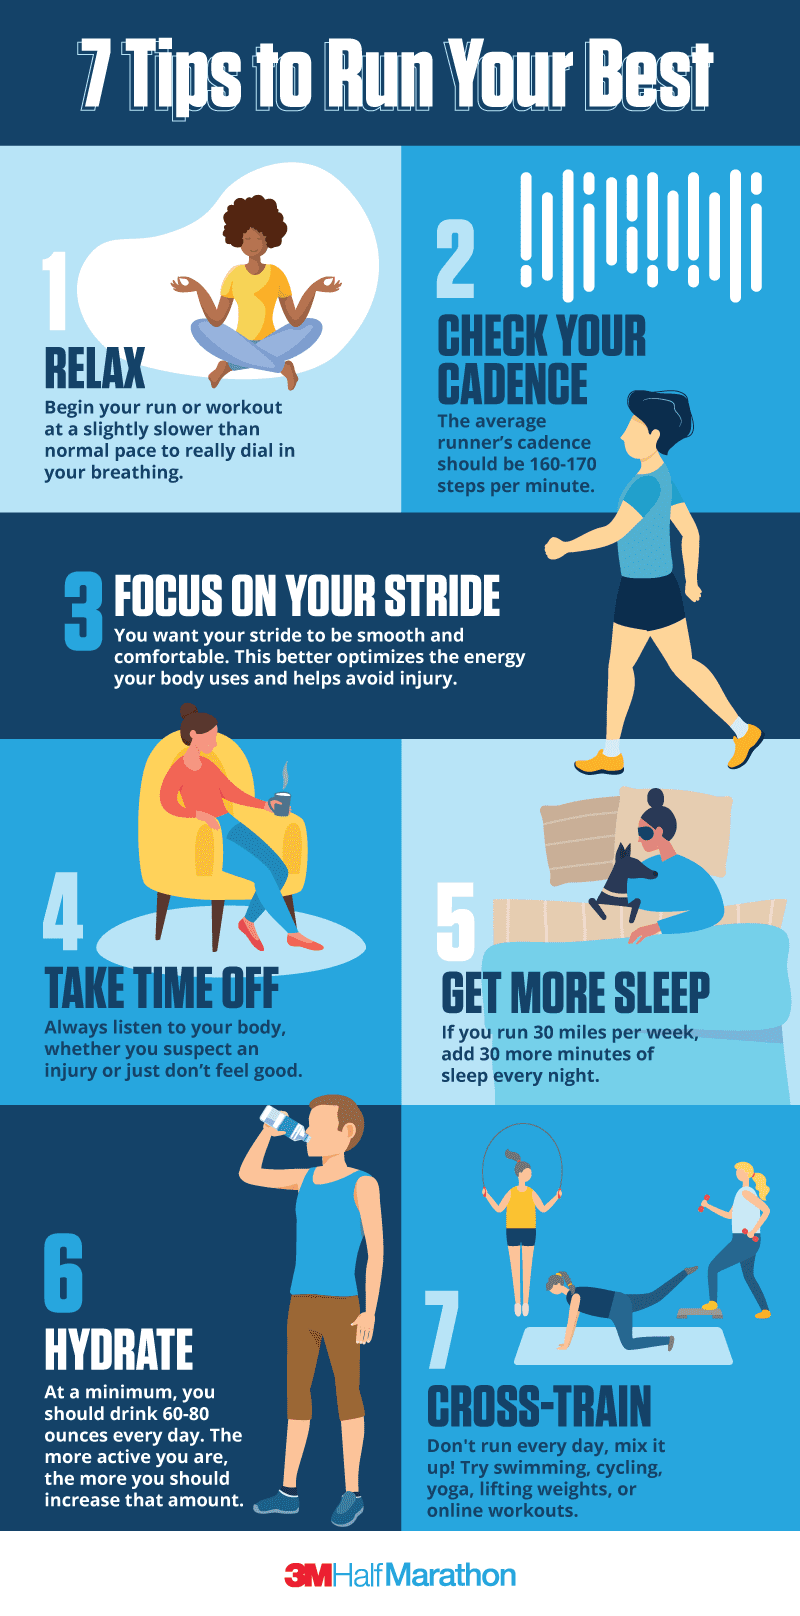 Downloadable infographic highlighting 7 tips you should follow to run your best.